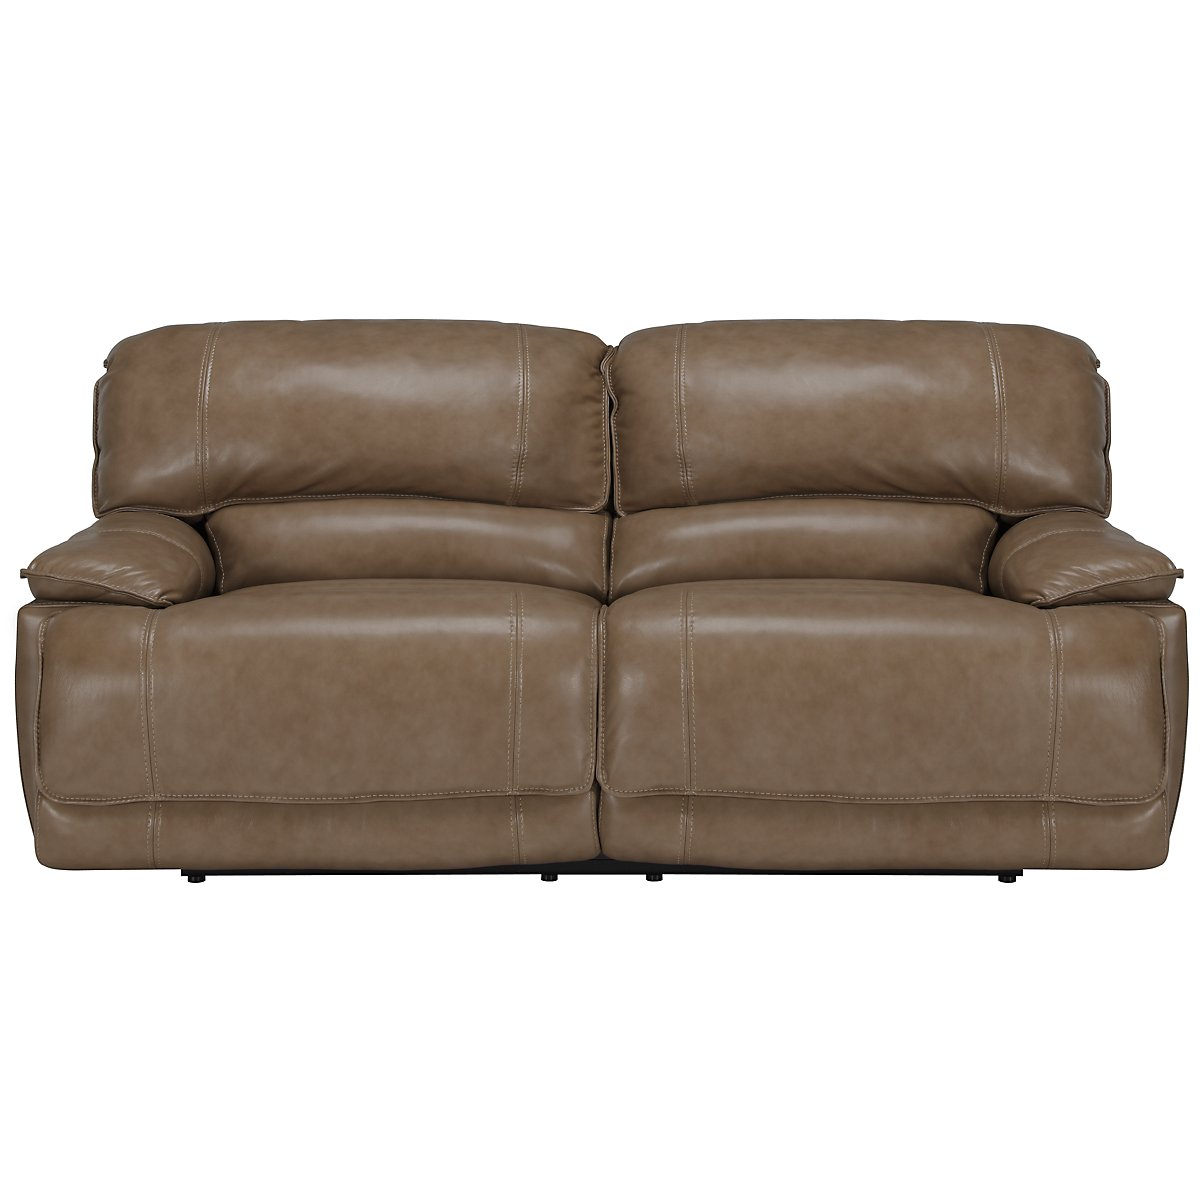 Benson Dk Taupe Leather & Vinyl Reclining Sofa